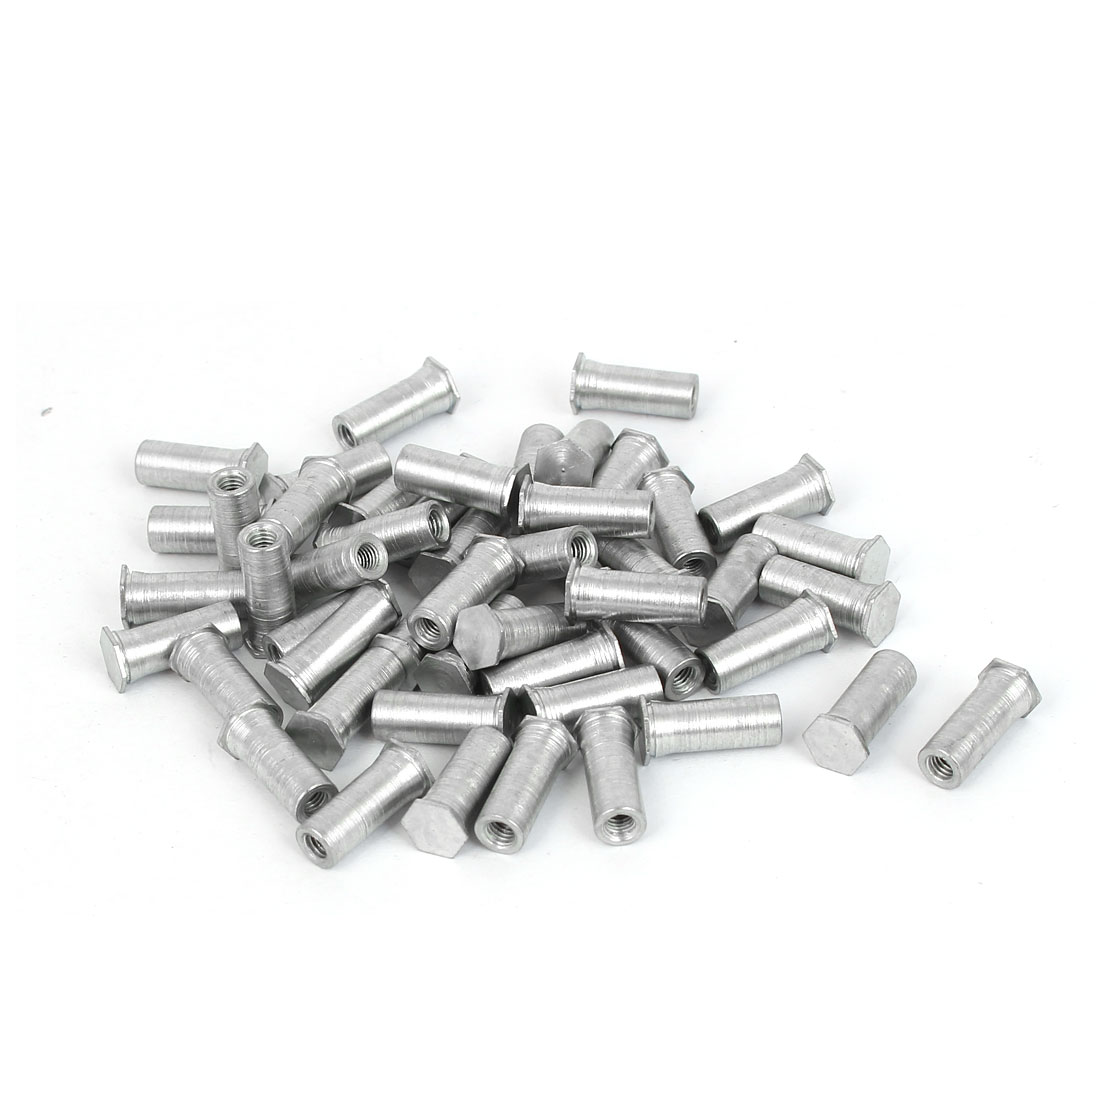 Carbon Steel Zinc Plated Hex Head Full Thread Self Clinching Standoff Silver Tone M3x13mm 50pcs